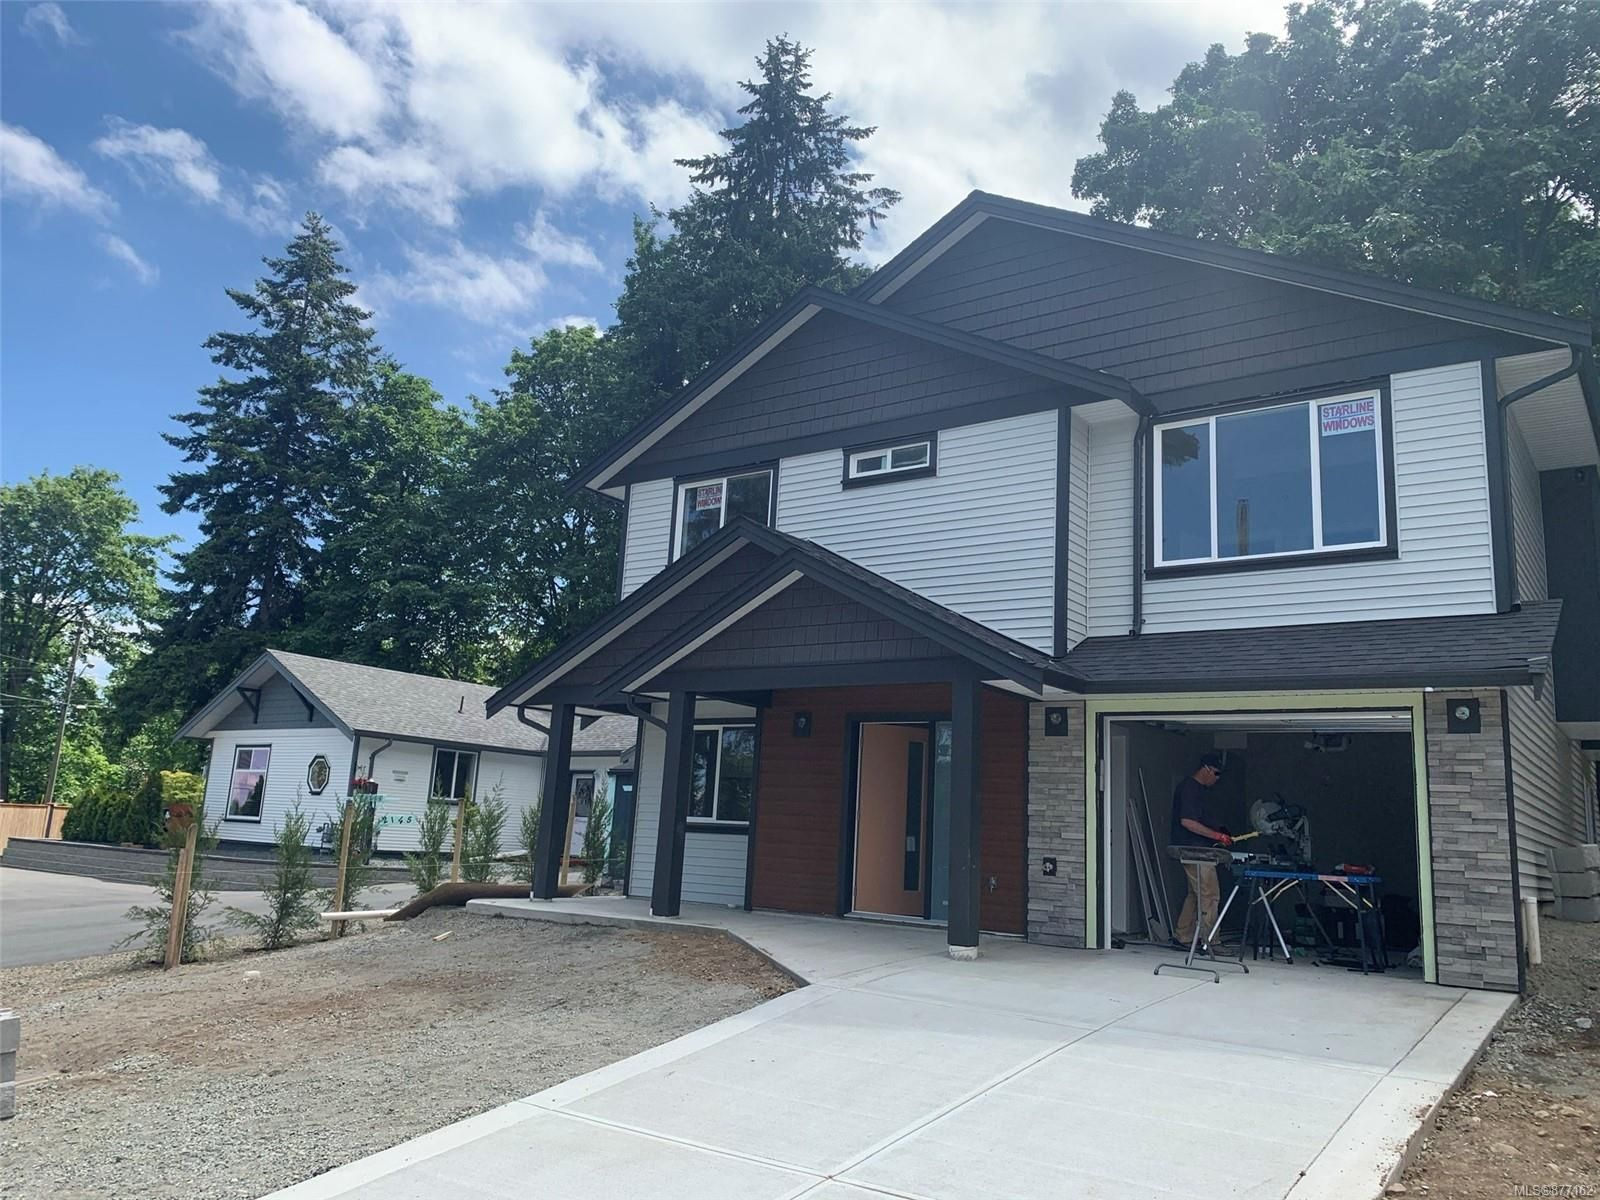 Main Photo: 2149 Salmon Rd in : Na University District House for sale (Nanaimo)  : MLS®# 877162